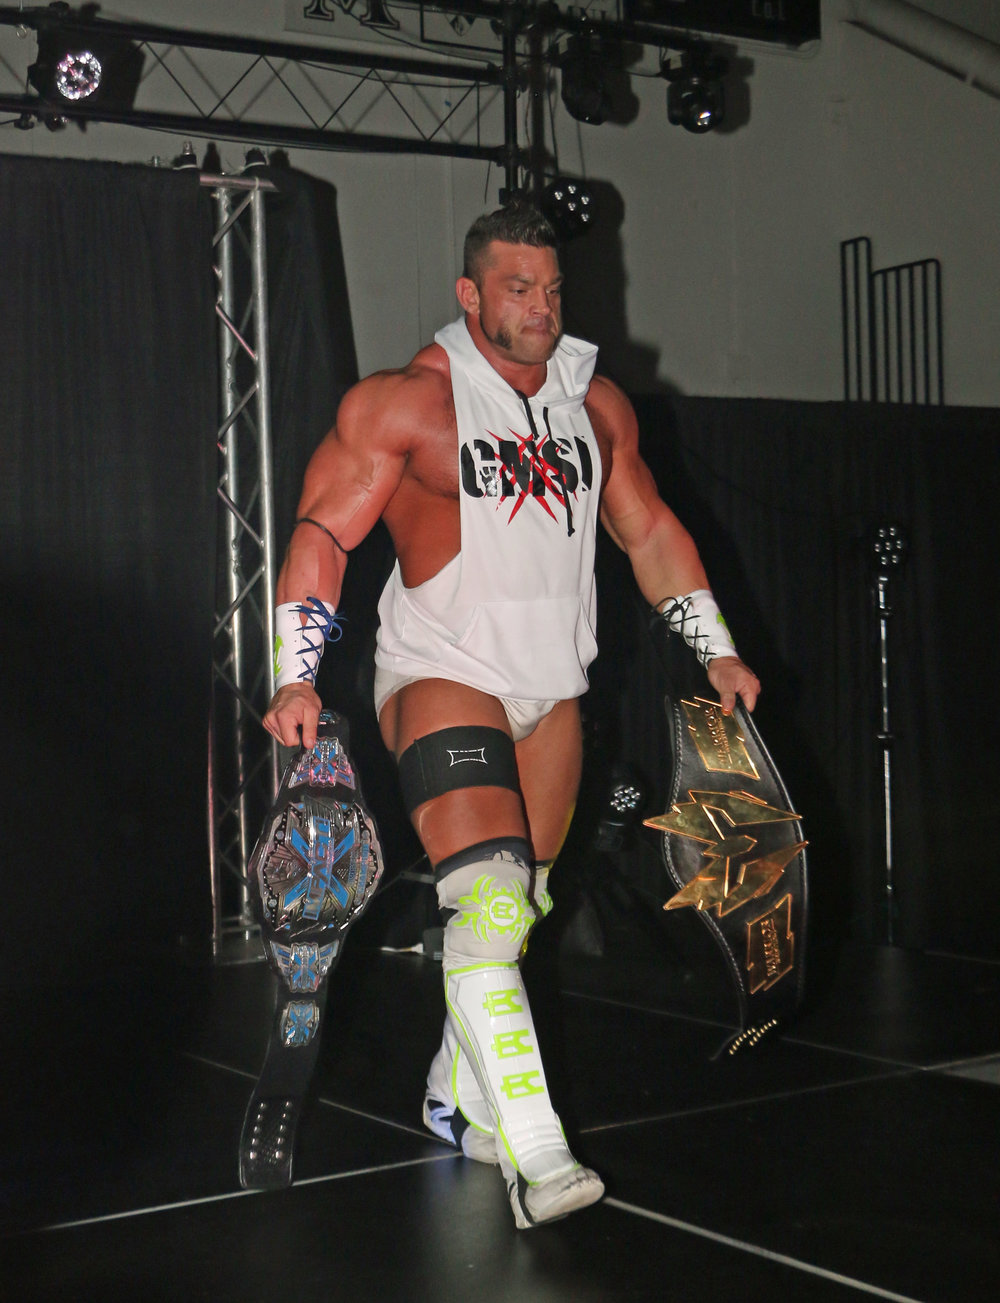 Warrior Wrestling Champion Brian Cage comes out with both the WW title and the IMPACT X Division Championship.